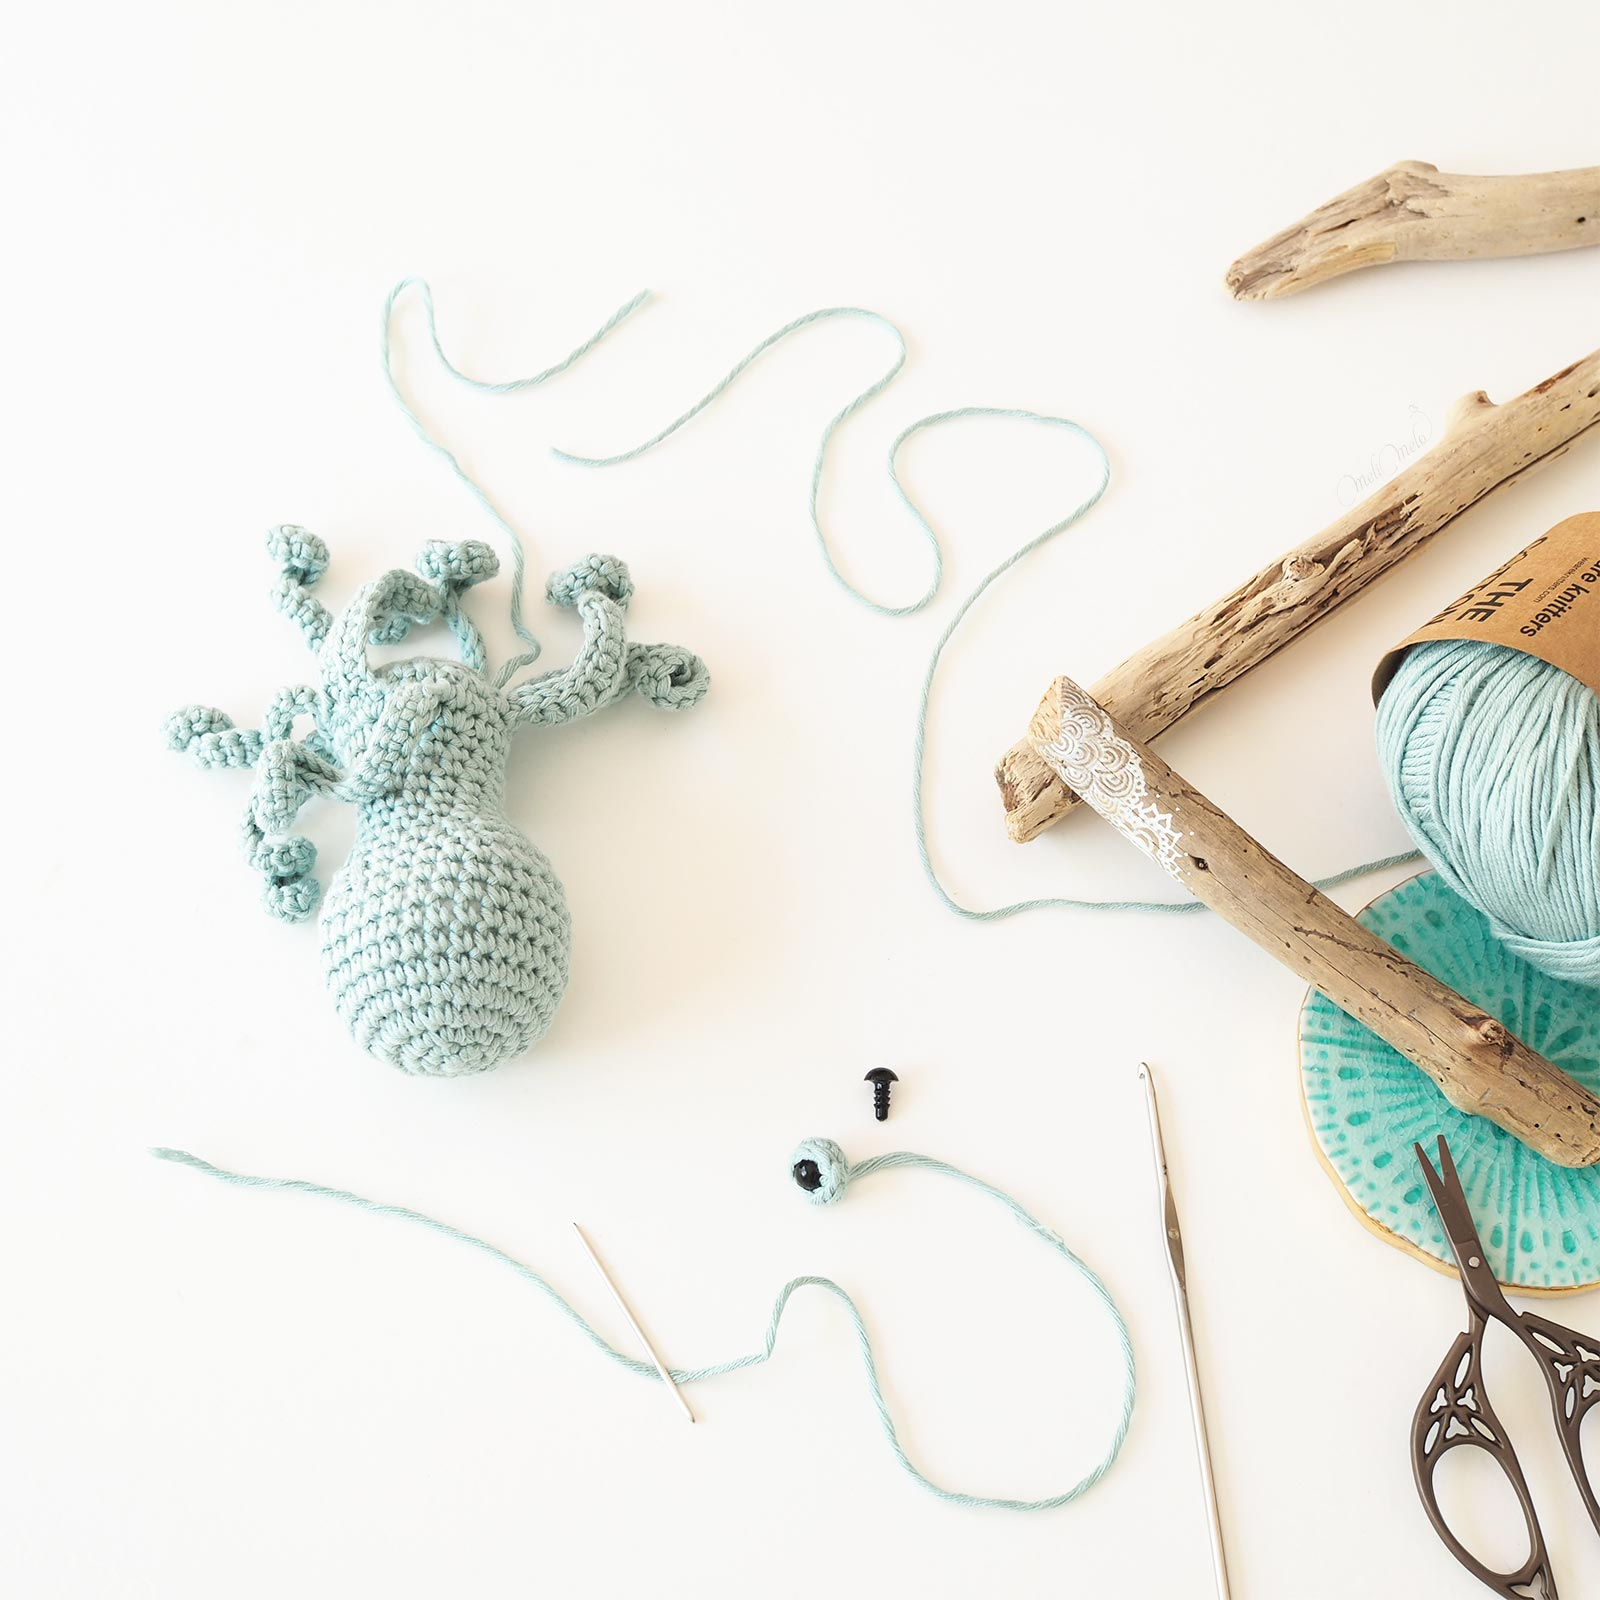 crochet poulpe encours The Cotton wak We are Knitters laboutiquedemelimelo